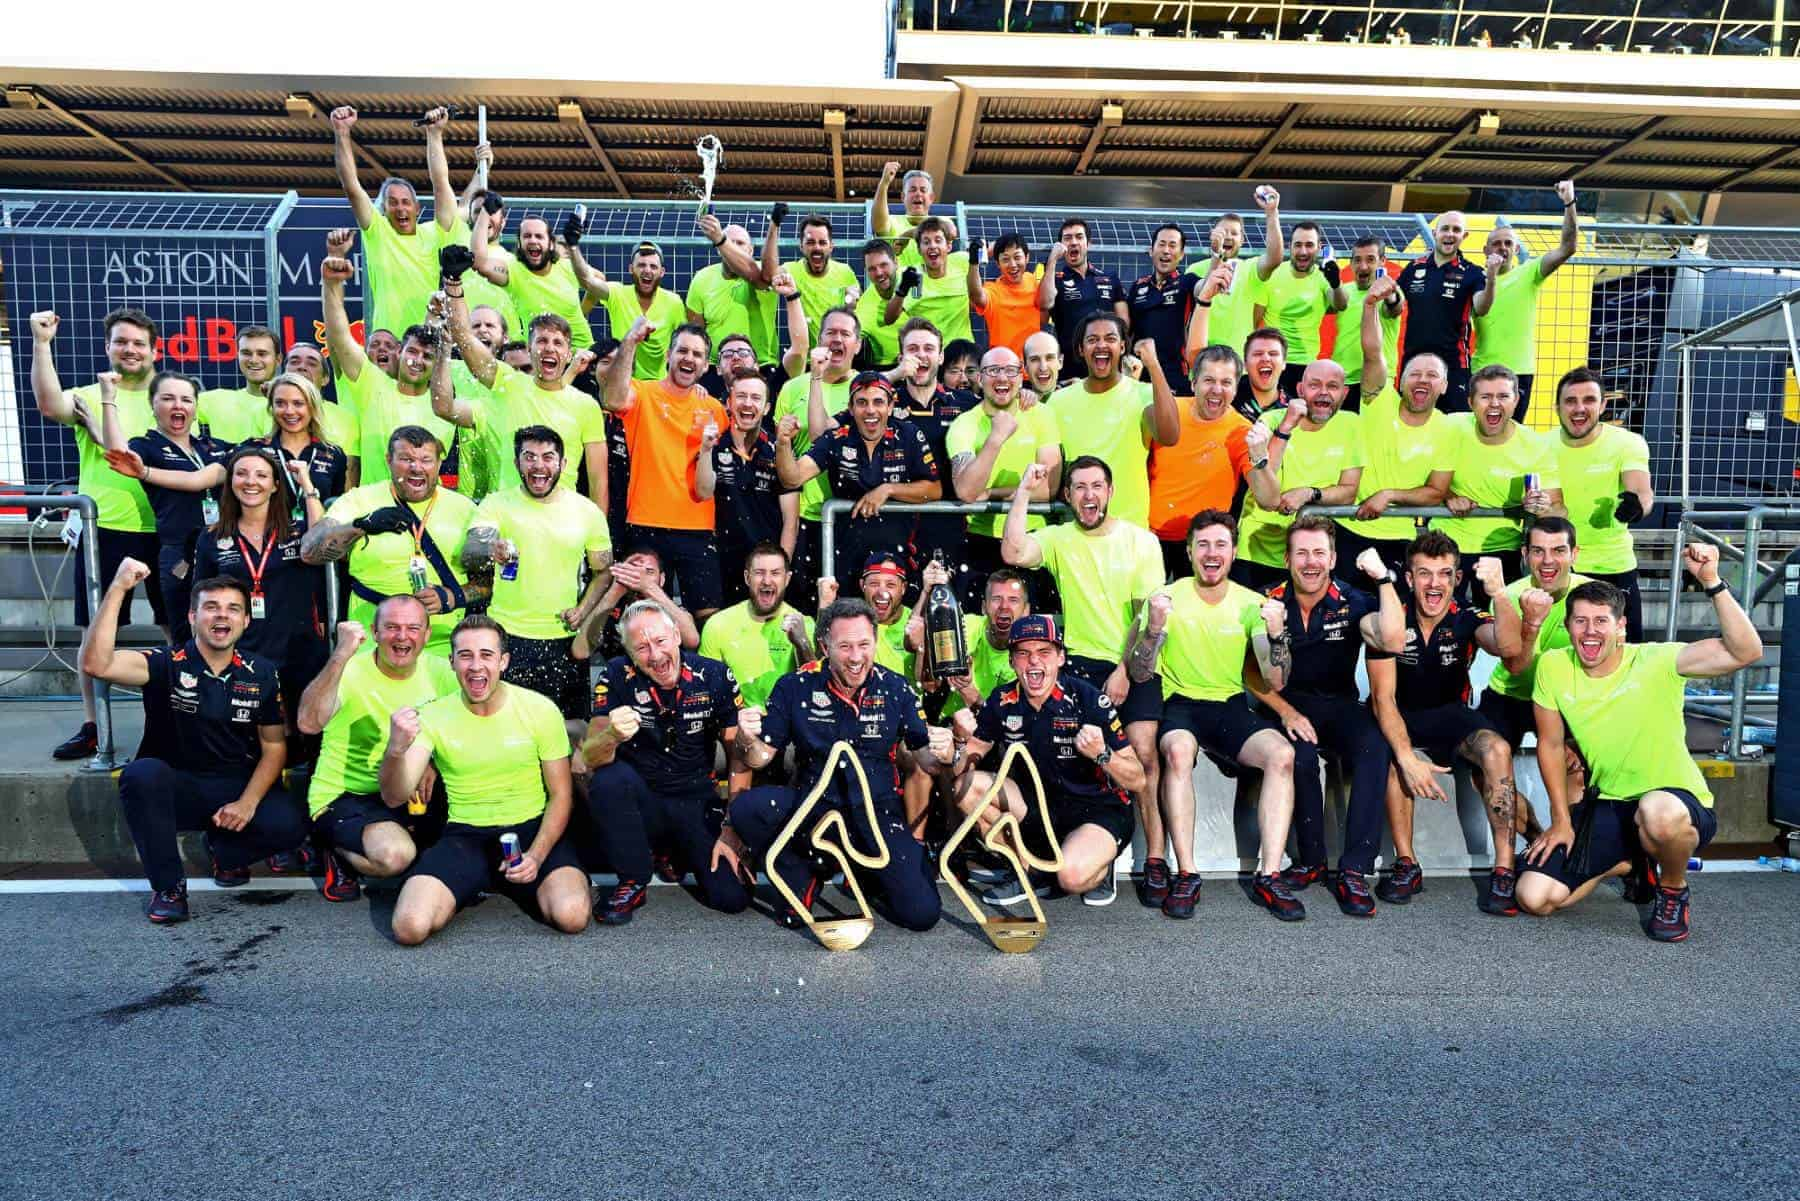 Austrian GP F1 2019 Red Bull Honda celebrate victory pitlane Photo Red Bull